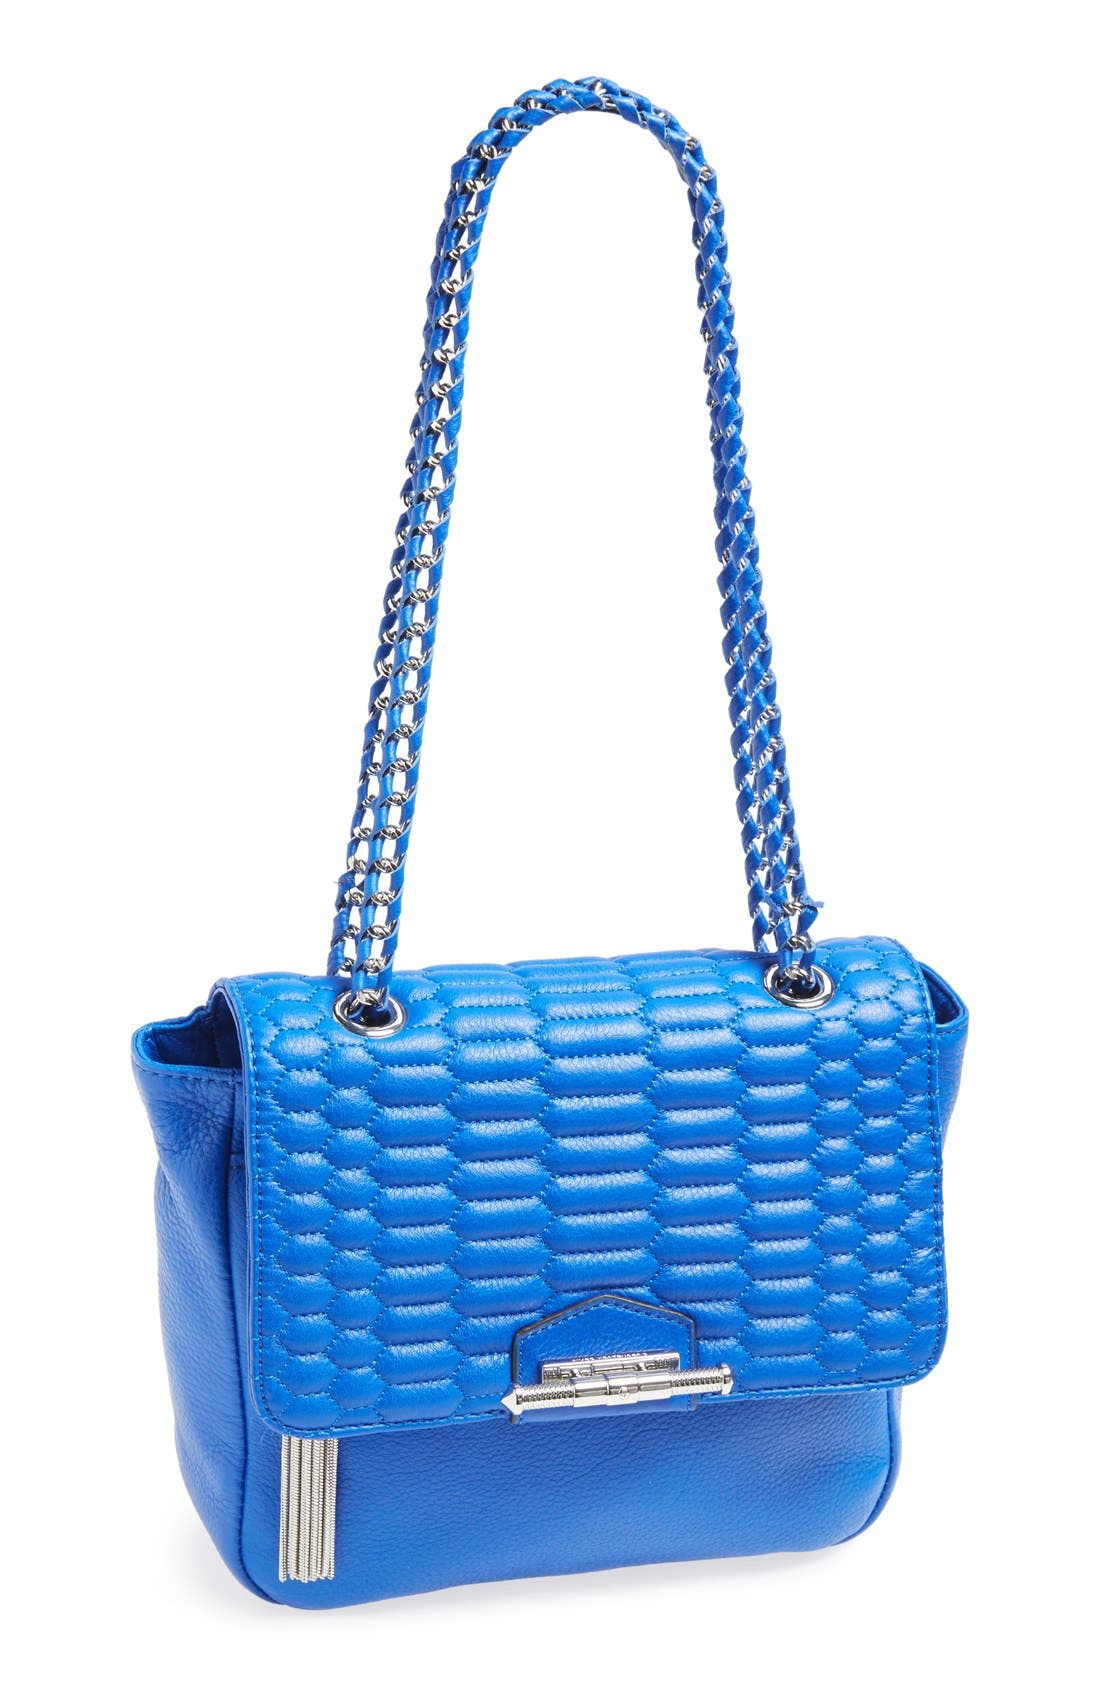 Main Image - Aimee Kestenberg 'Ambria' Convertible Shoulder Bag